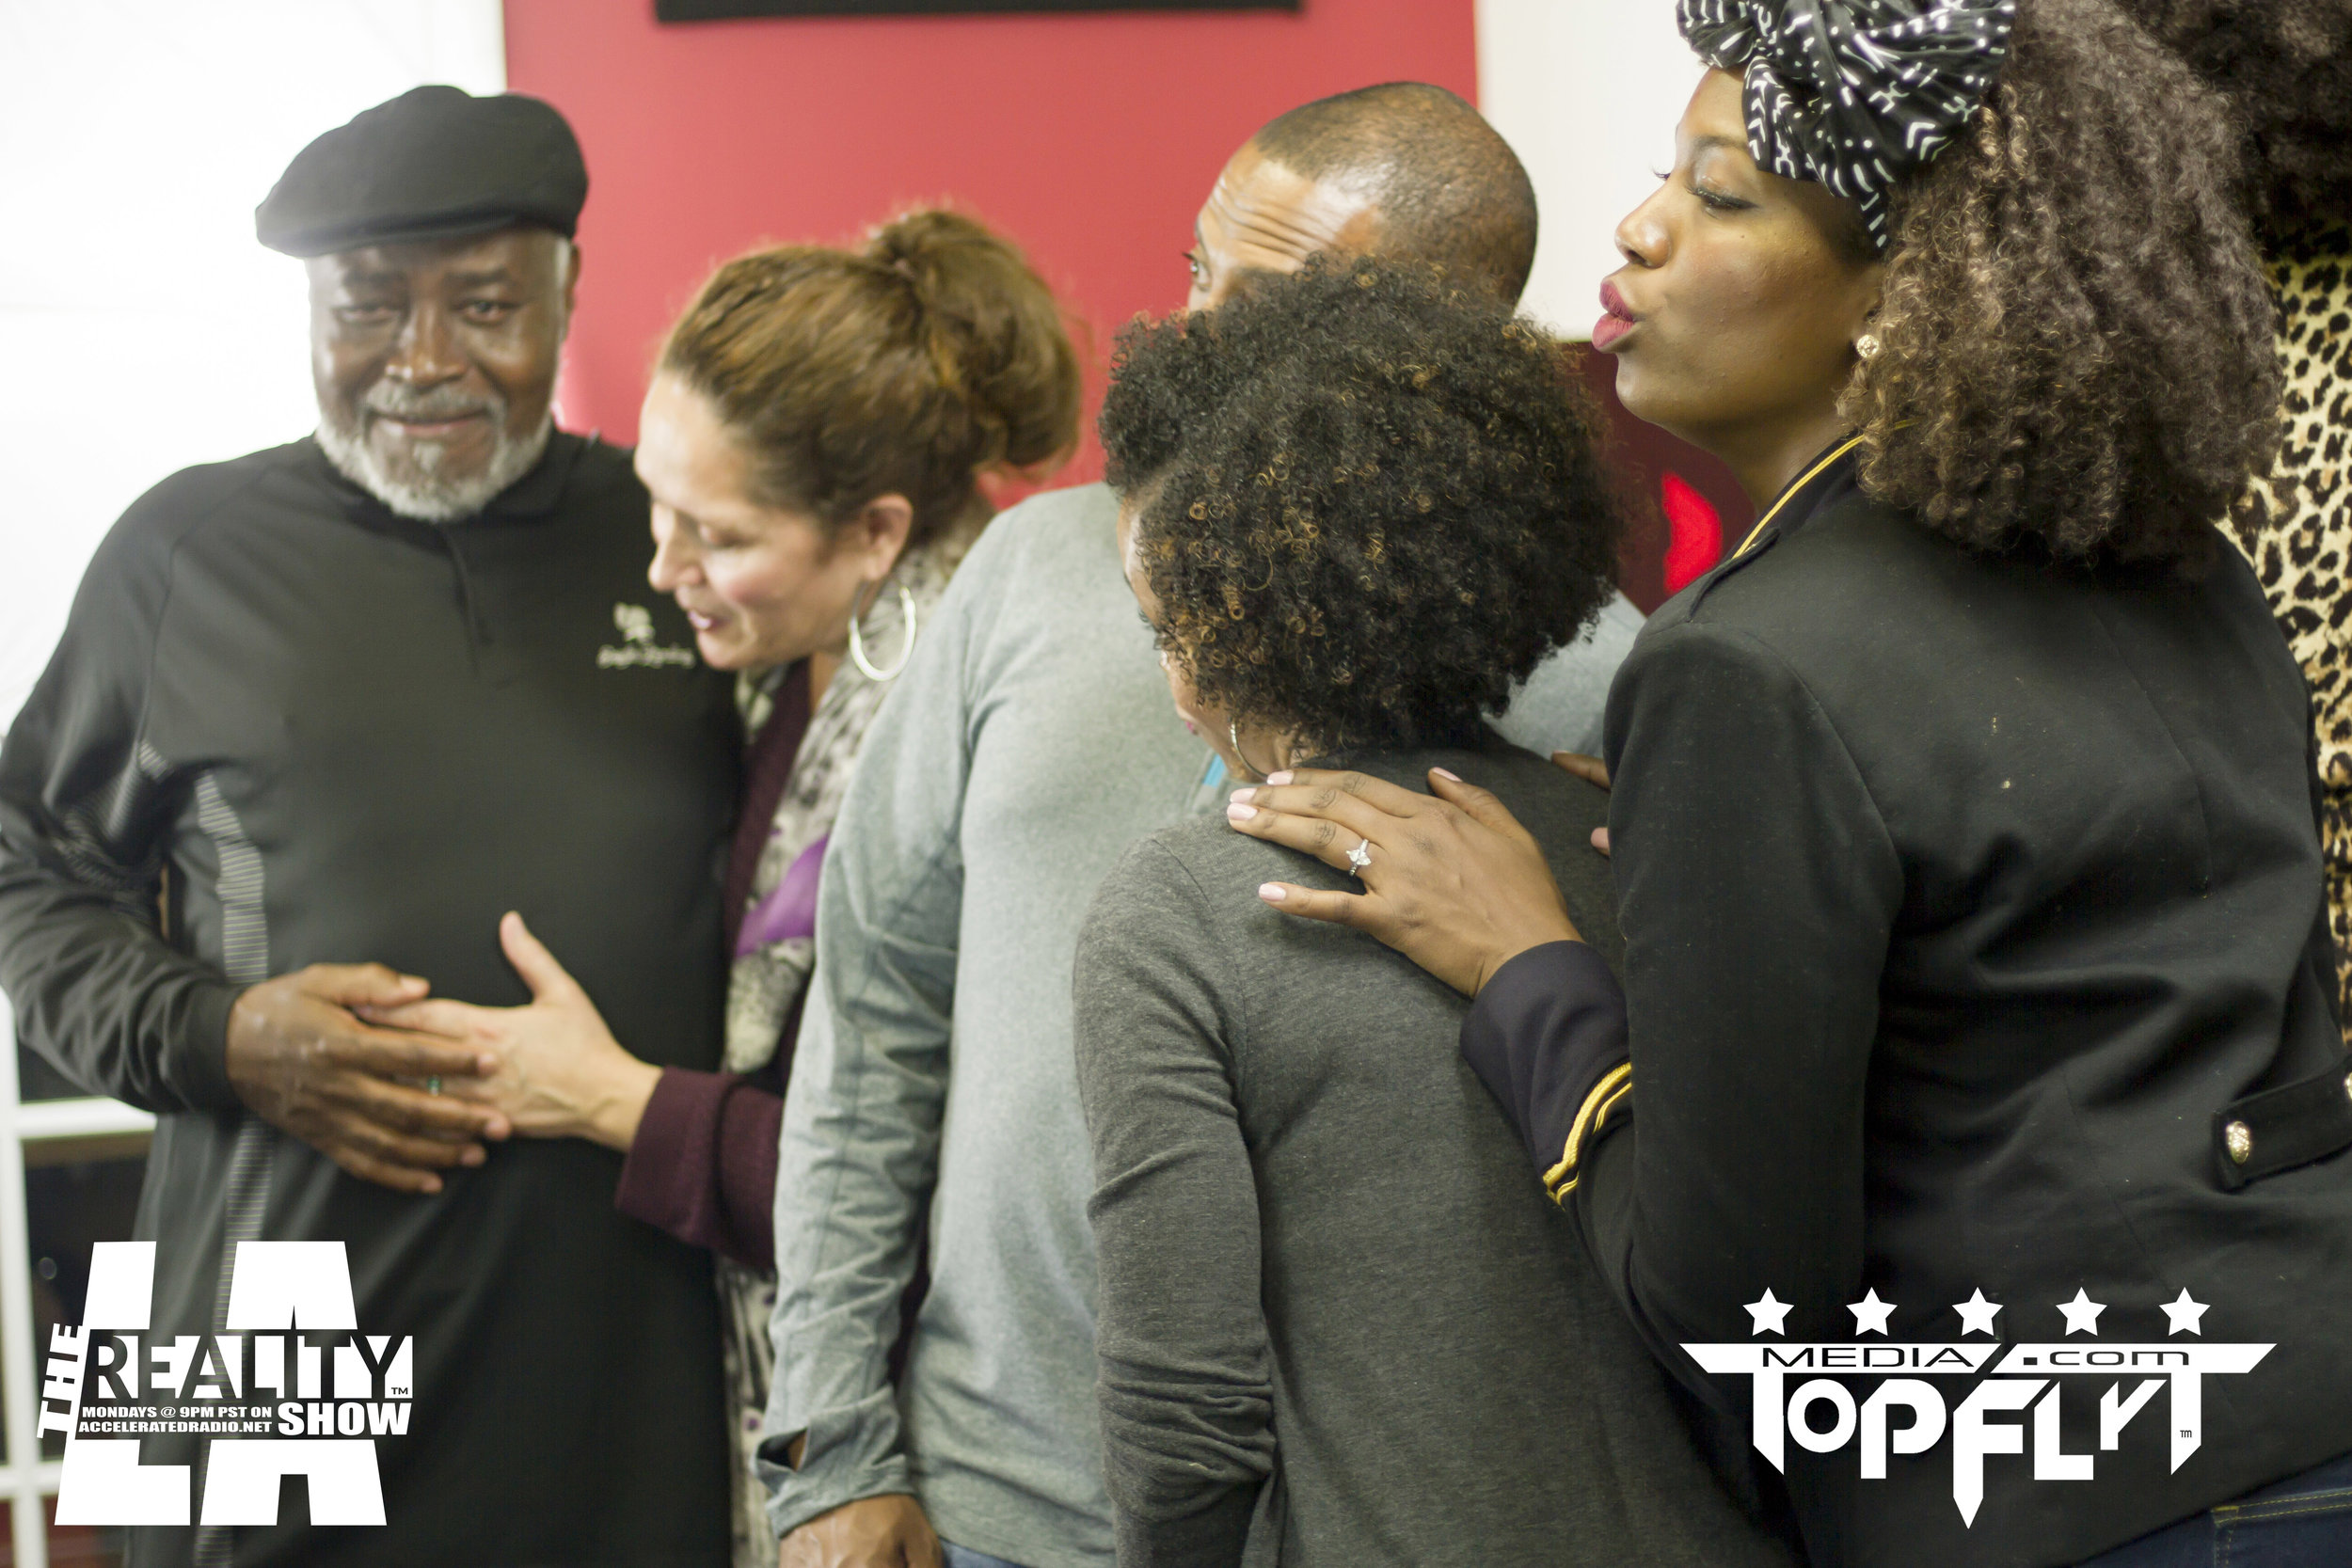 The Reality Show LA ft. Cast of FunnyMarriedStuff And Raquel Harris - 01-16-17_18.jpg